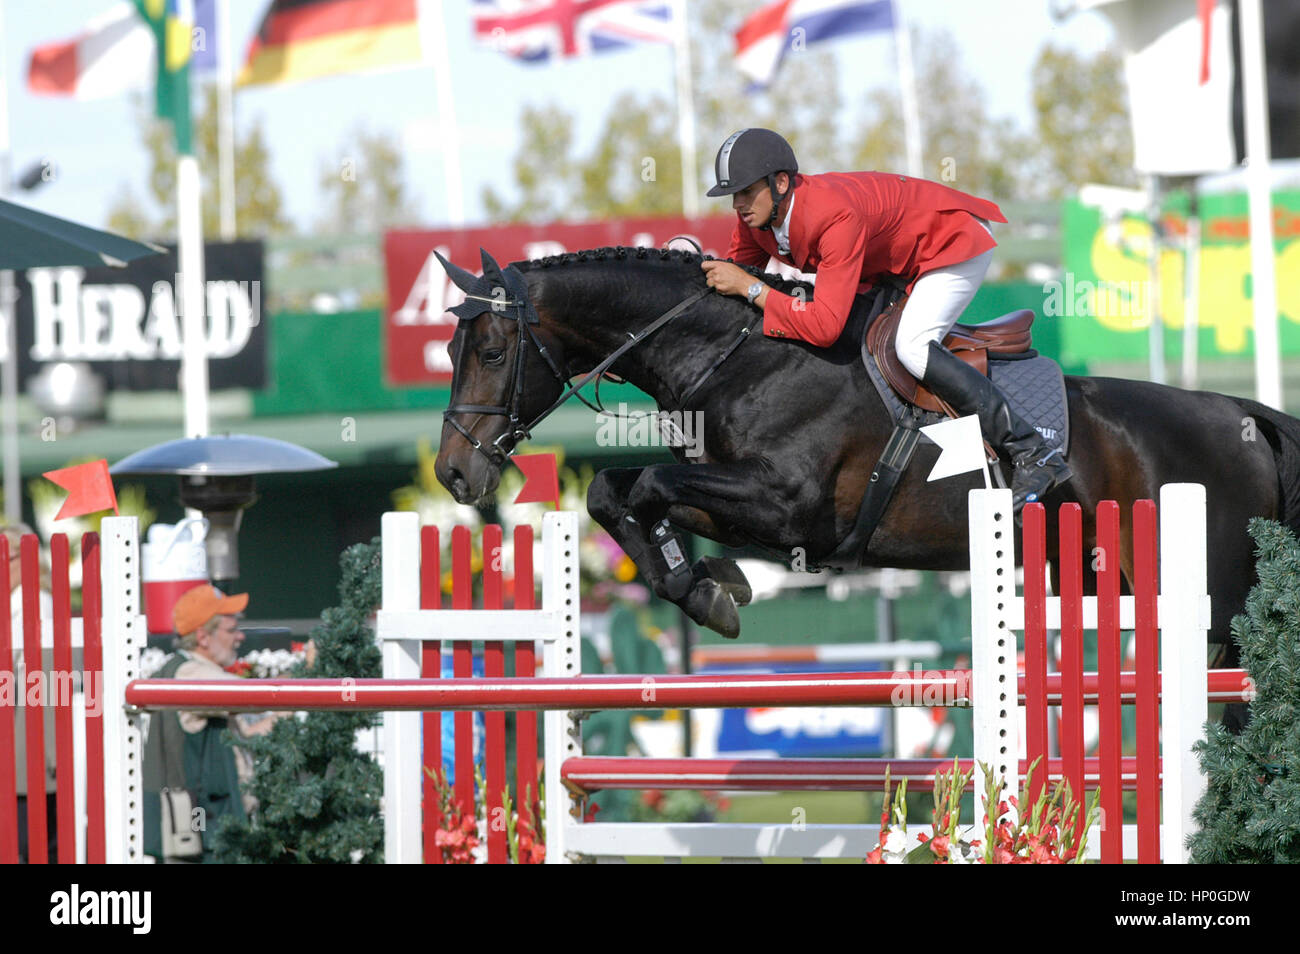 CSIO Masters, Spruce Meadows, September 2005, CANA CUP, Marco Kutscher (GER) riding Montender 2 Stock Photo